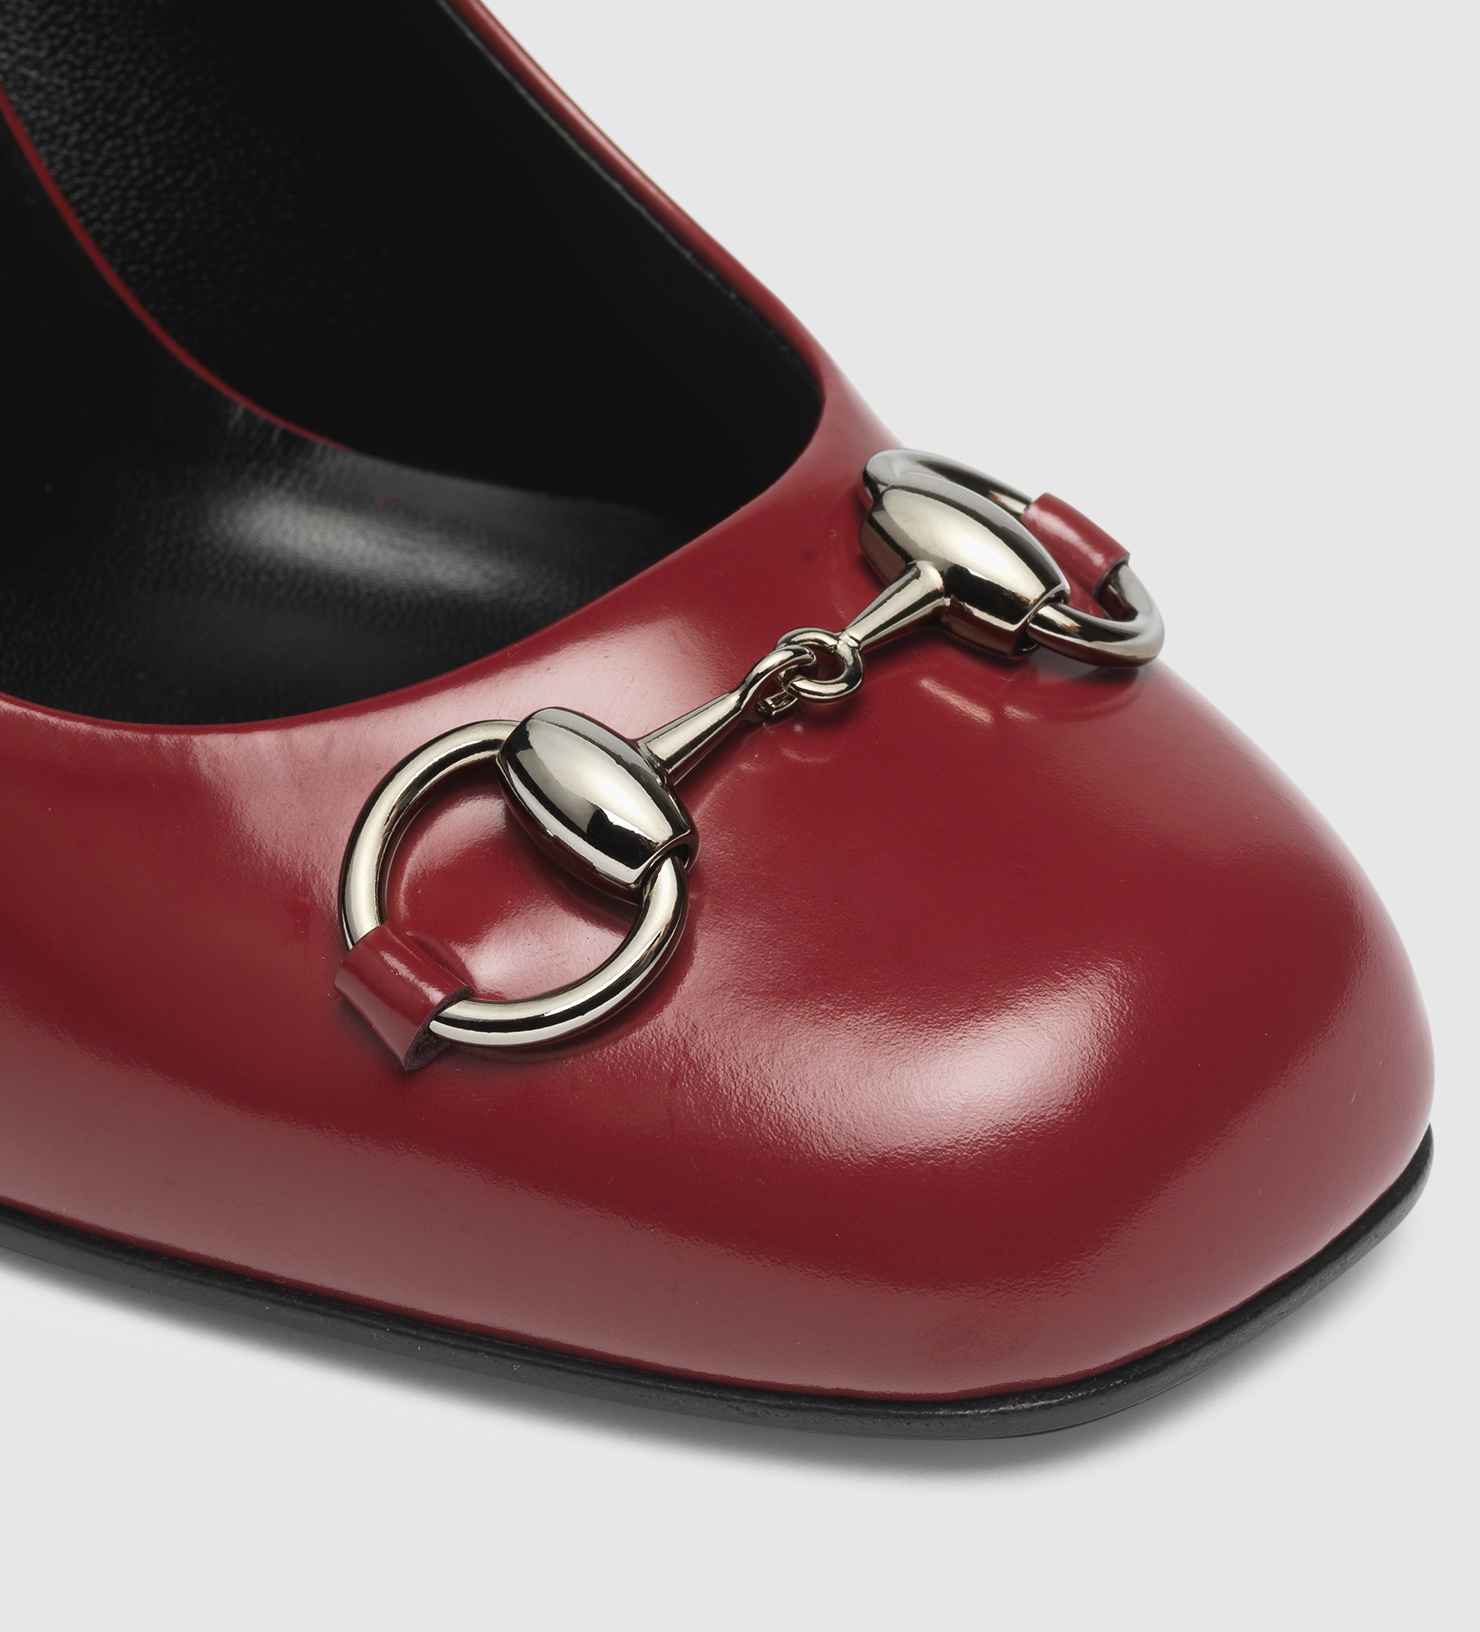 5d1a6703965 Gucci Polished Leather Horsebit Loafer Pump in Red - Lyst